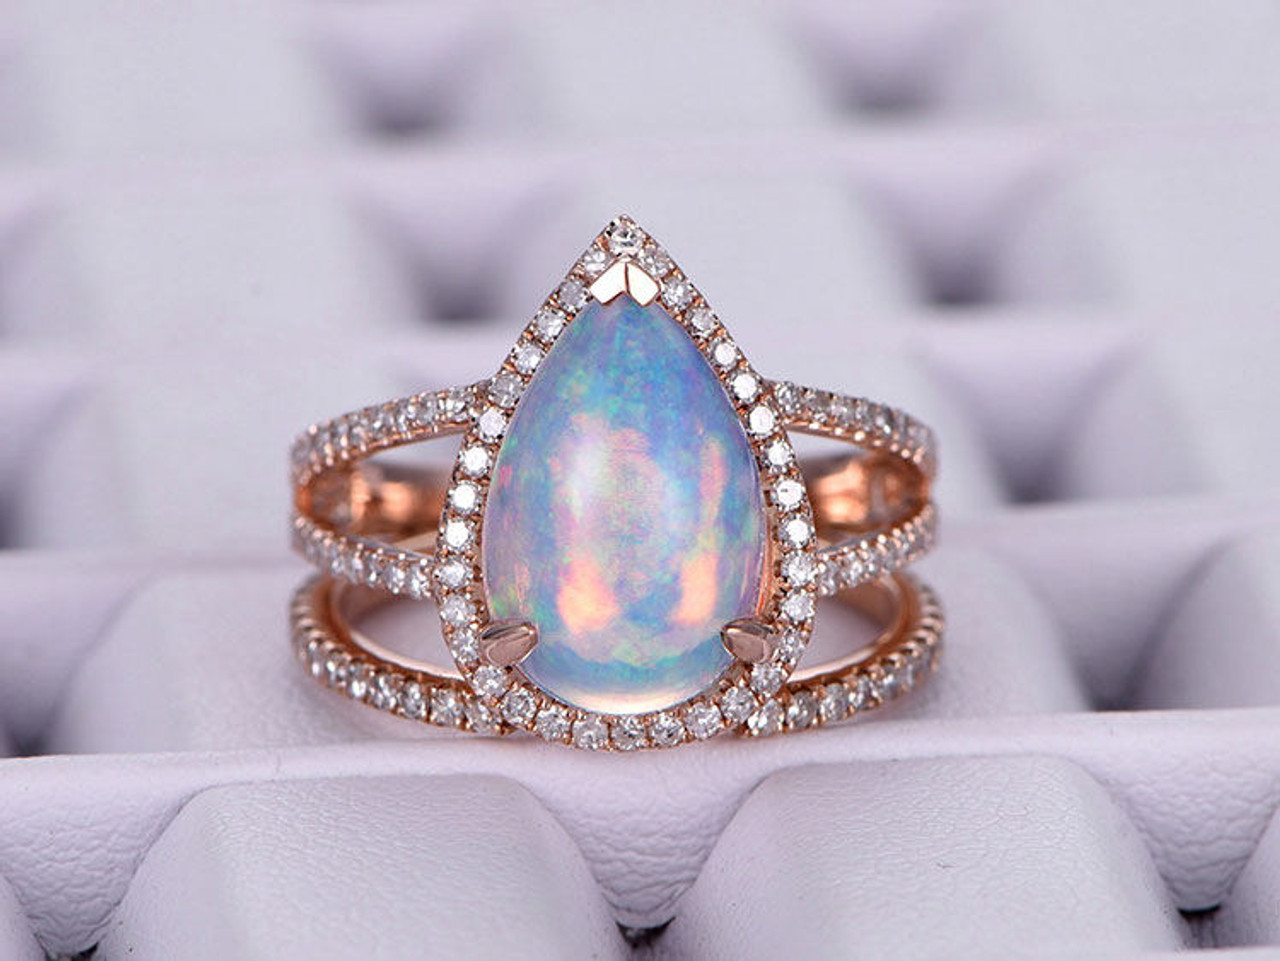 Pear shaped African Opal Engagement ring set 14k rose gold